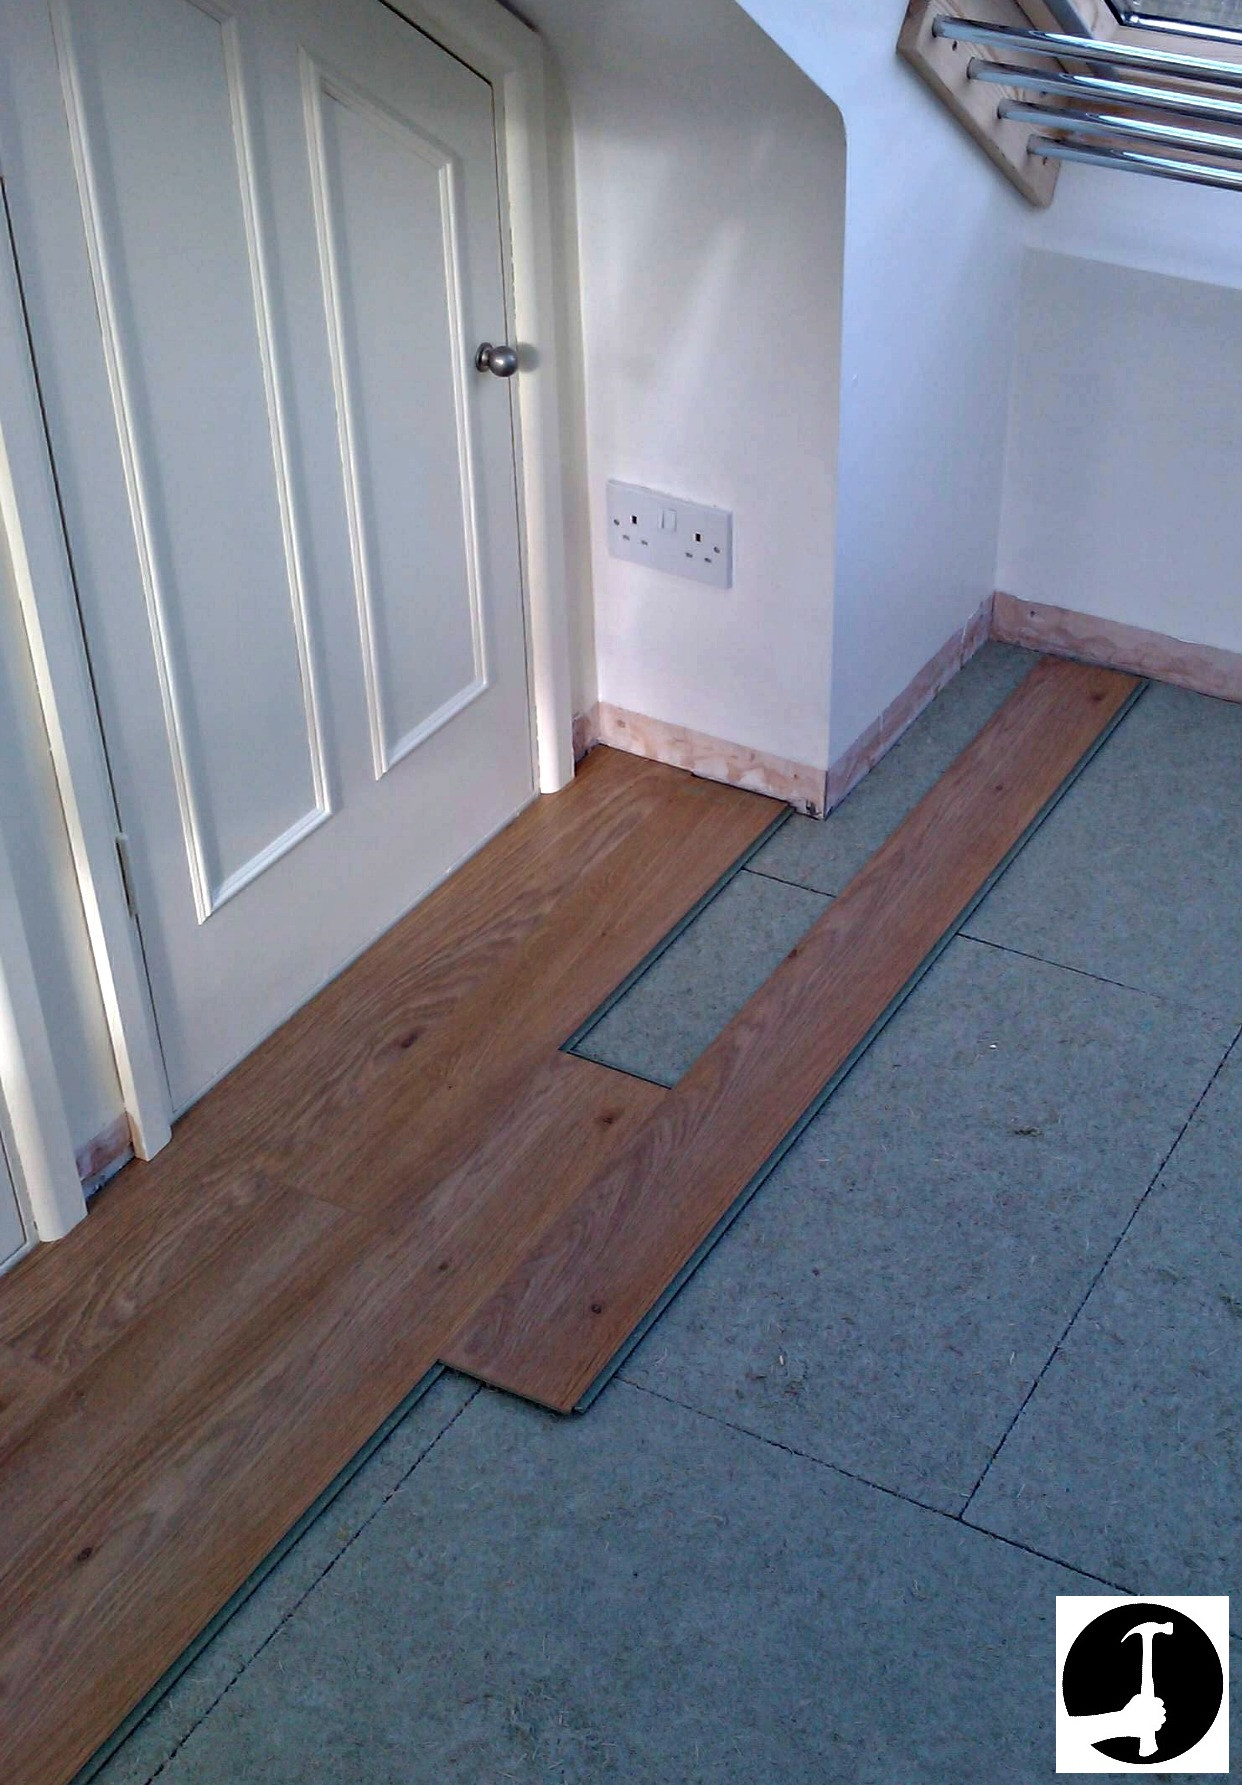 19 Ideal Hardwood Floors Floating Vs Glue Down 2021 free download hardwood floors floating vs glue down of how to install laminate flooring with ease glued glue less systems for setting out laminate flooring